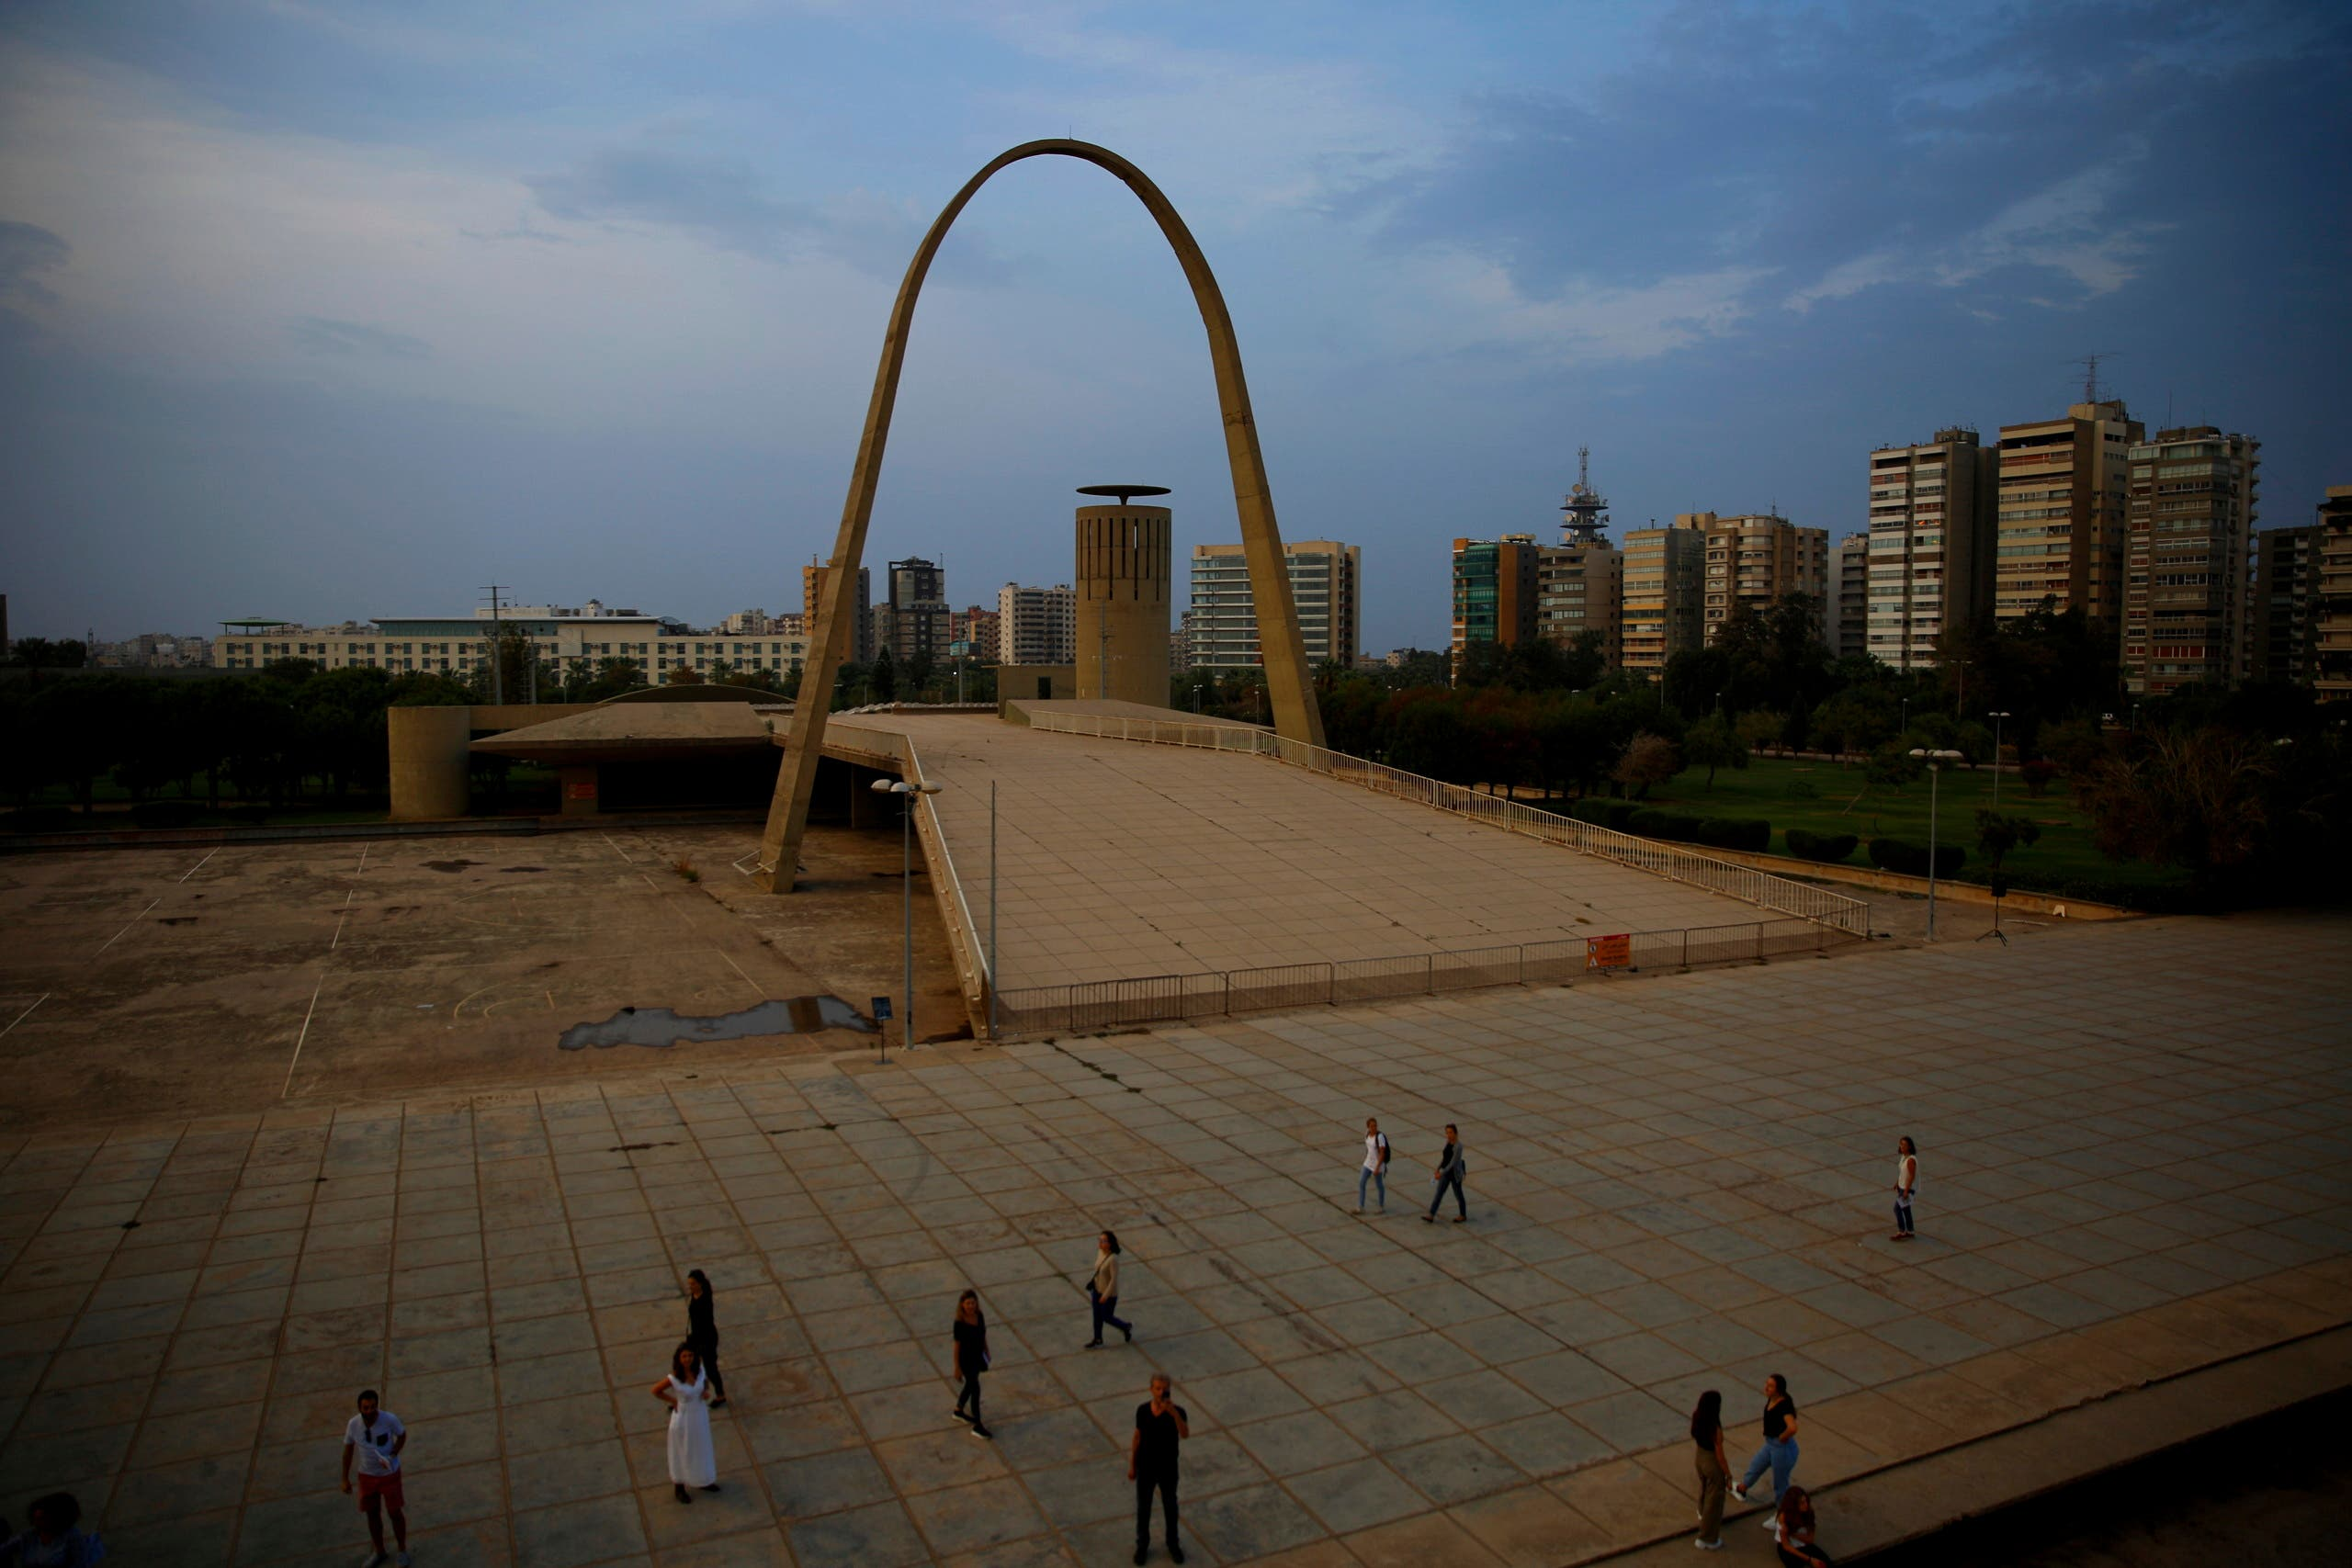 In this Saturday, Oct. 20, 2018 photo, visitors tour The Open Air Theater, designed in the early 1960s by the late Brazilian architect Oscar Niemeyer, at the Rashid Karami International Fair, in the northern city of Tripoli, Lebanon. The fairground has just been included on the list of sites eligible for listing on the World Heritage of Humanity by UNESCO. (AP)